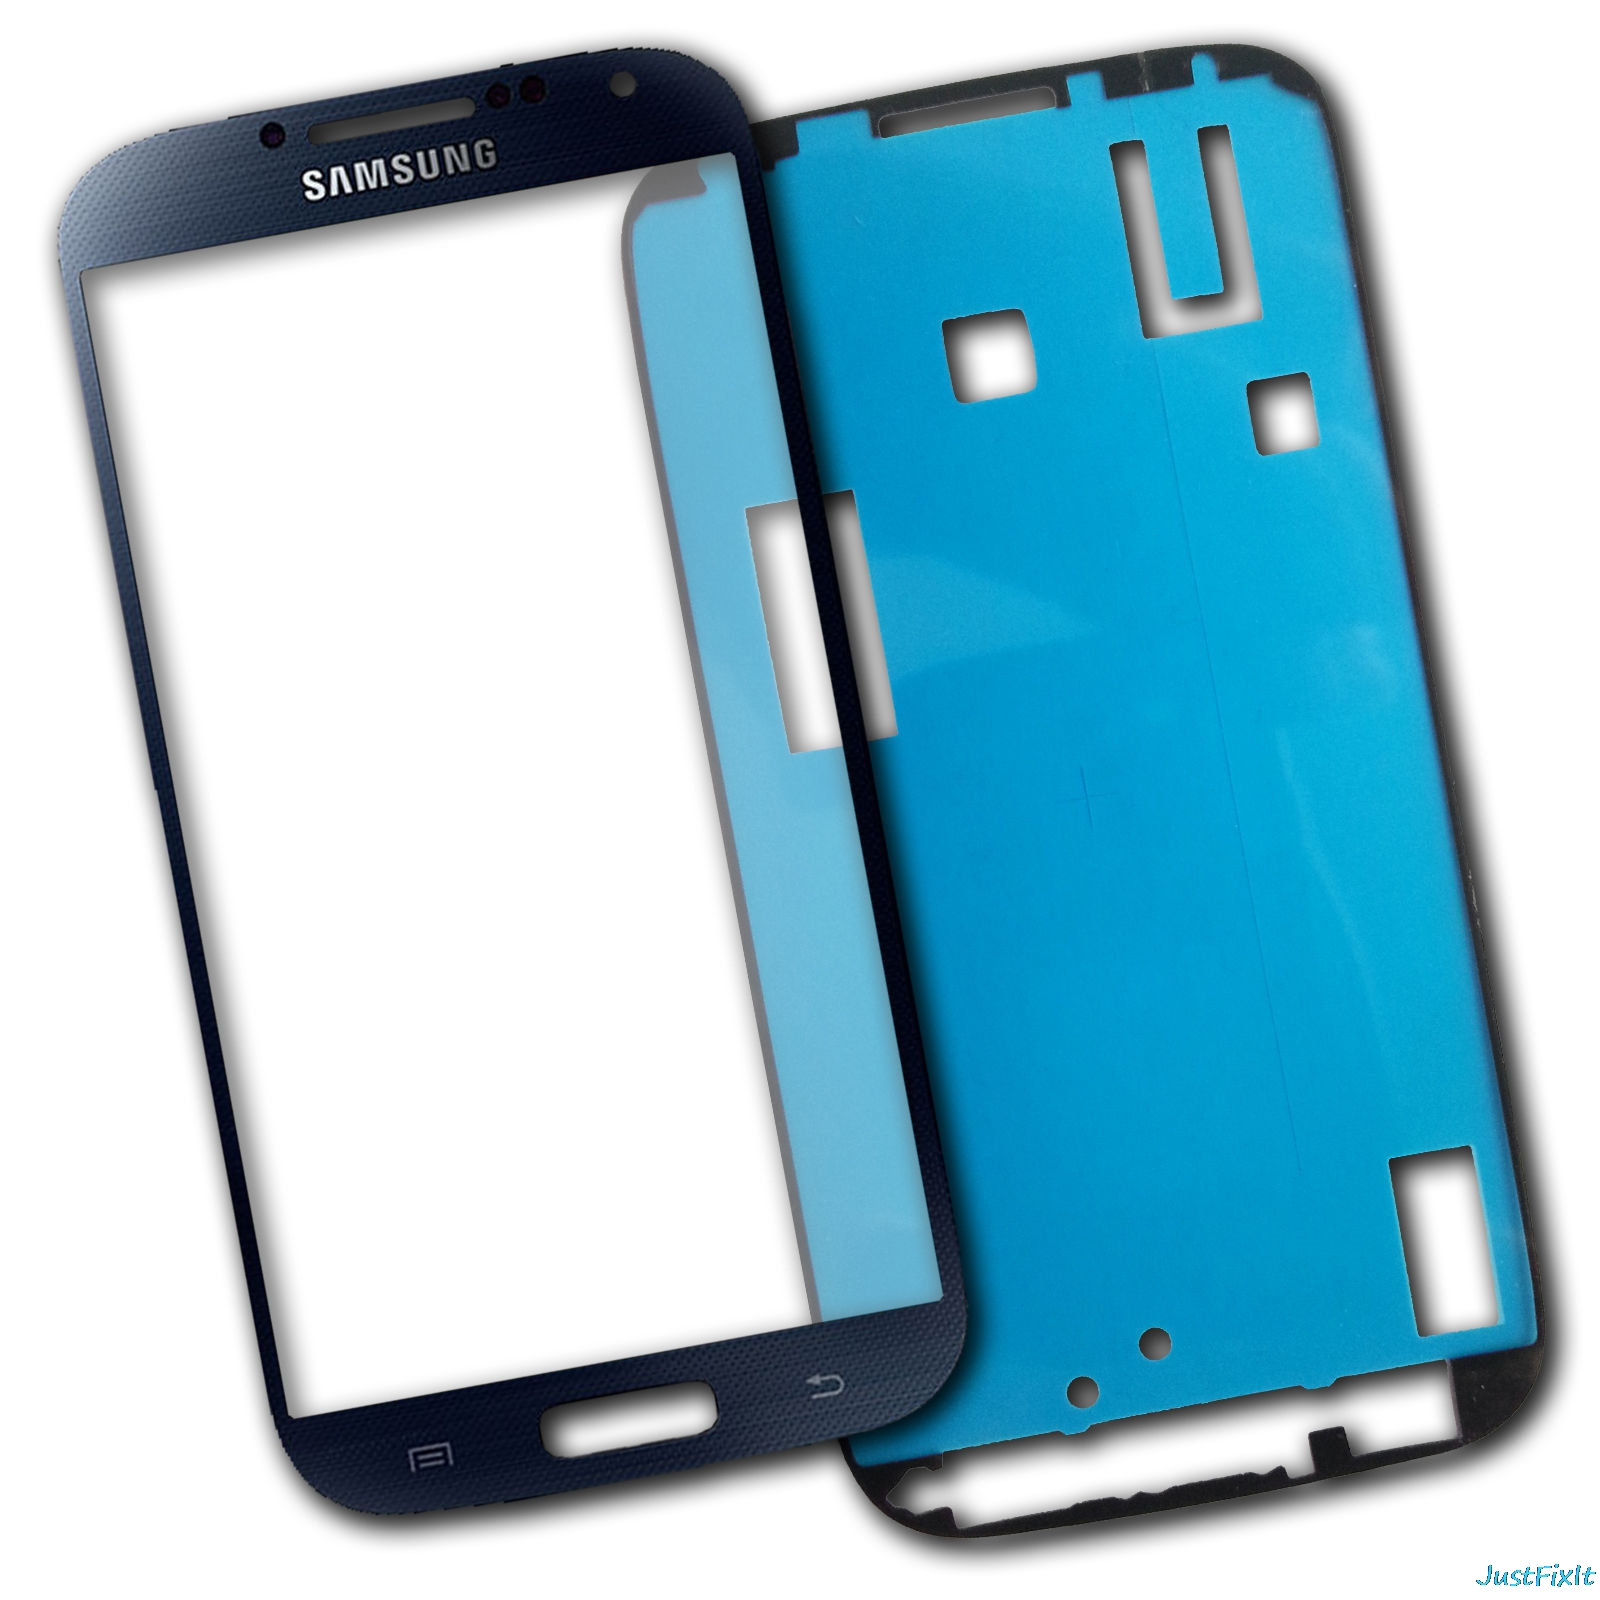 Replacement For <font><b>Samsung</b></font> <font><b>Galaxy</b></font> <font><b>S4</b></font> <font><b>i9500</b></font> i9505 Front Glass Lens LCD display outer <font><b>touch</b></font> panel <font><b>screen</b></font> glass +Stickers+Tools image